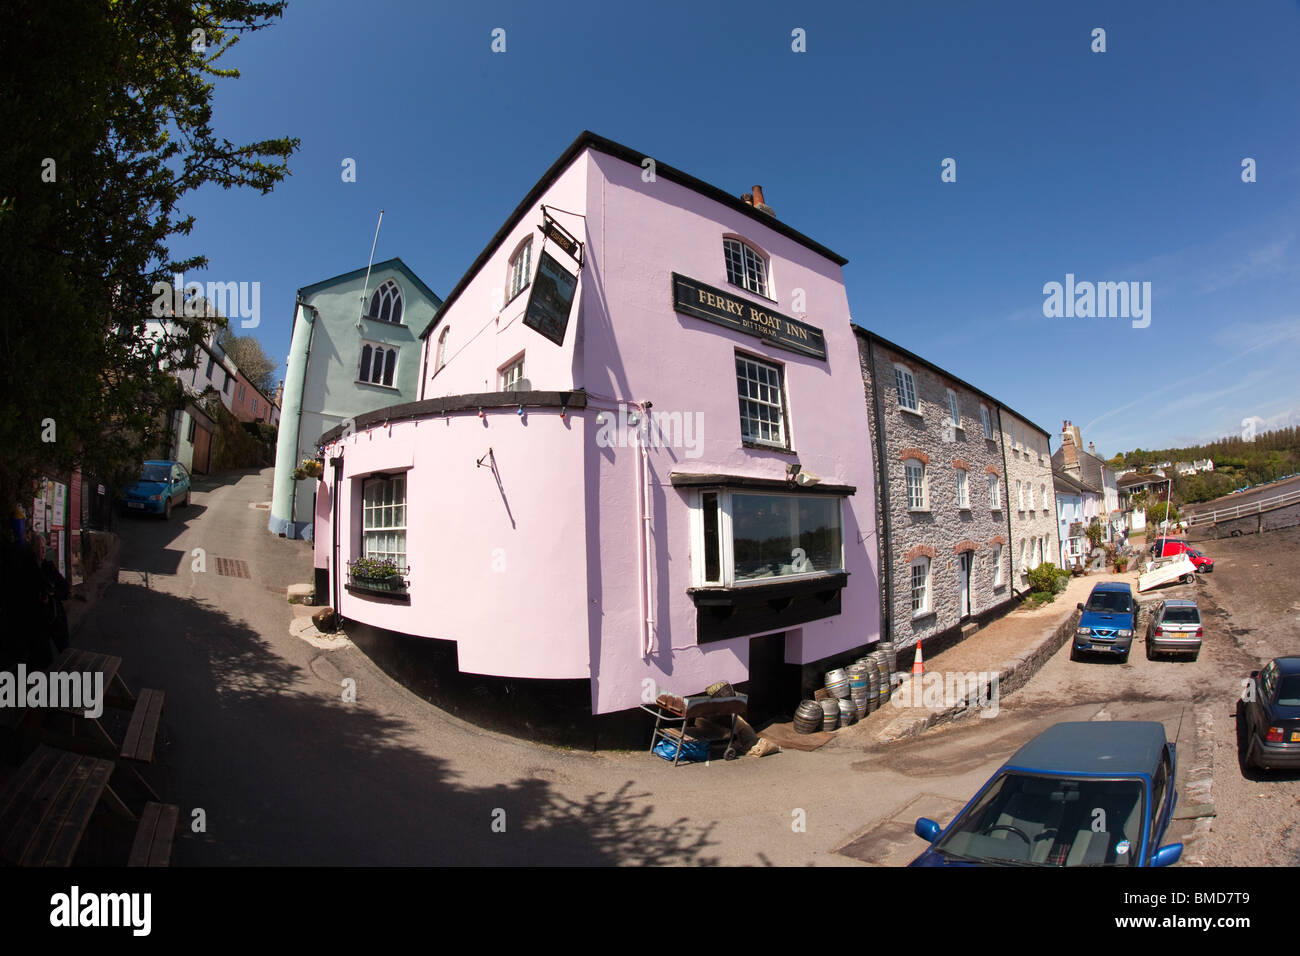 UK, England, Devon, Dittisham, Ferry Boat Inn overlooking River Dart, fisheye wide angle view - Stock Image